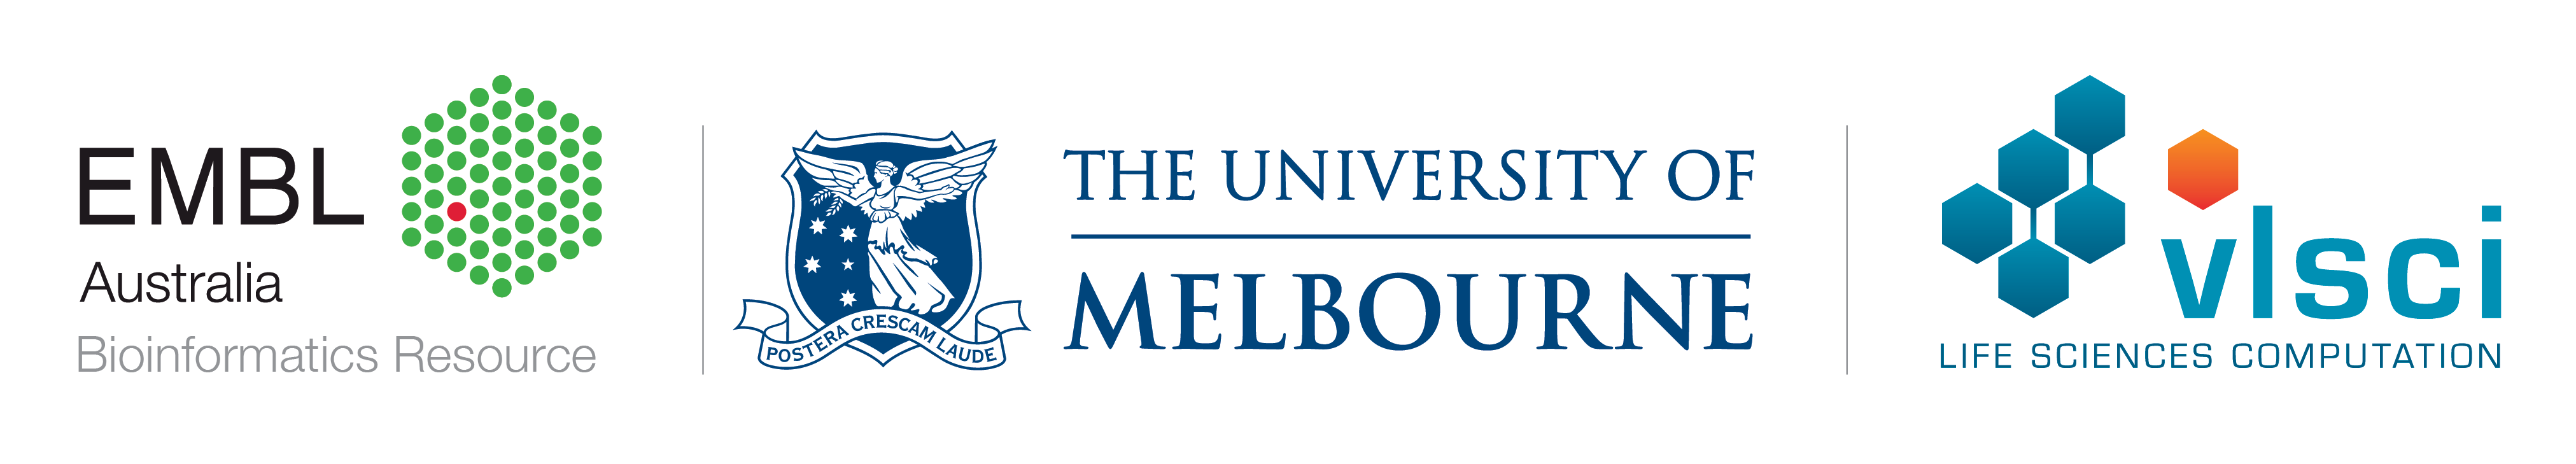 The EMBL, University of Melbourne and VLSCI's logos